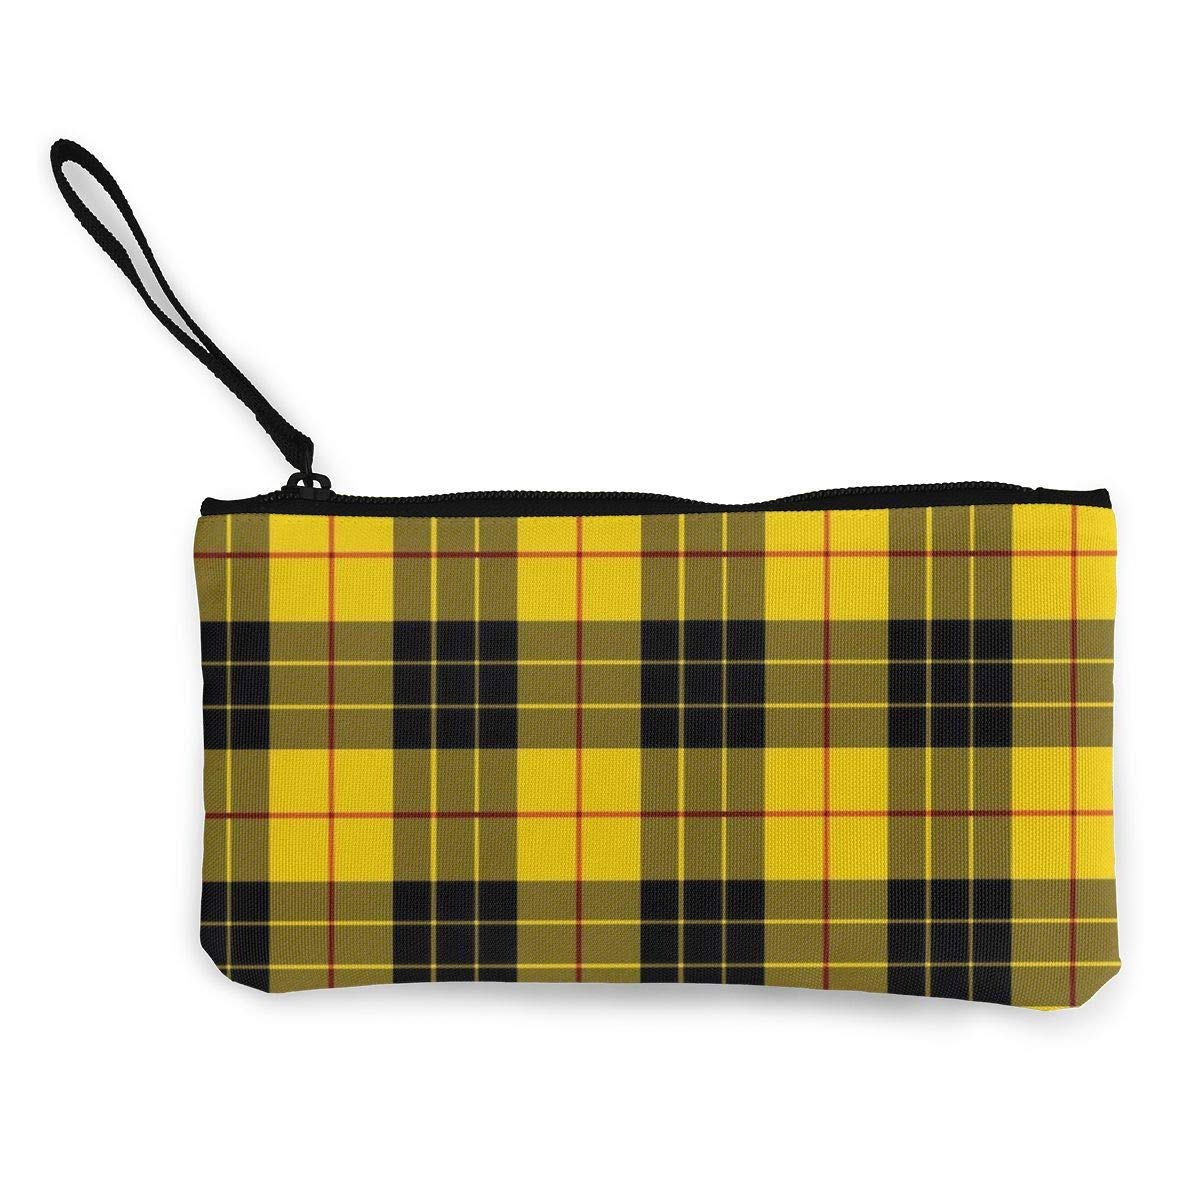 DH14hjsdDEE Yellow Gray Black Plaid Pattern Zipper Canvas Coin Purse Wallet Make Up Bag Cellphone Bag With Handle